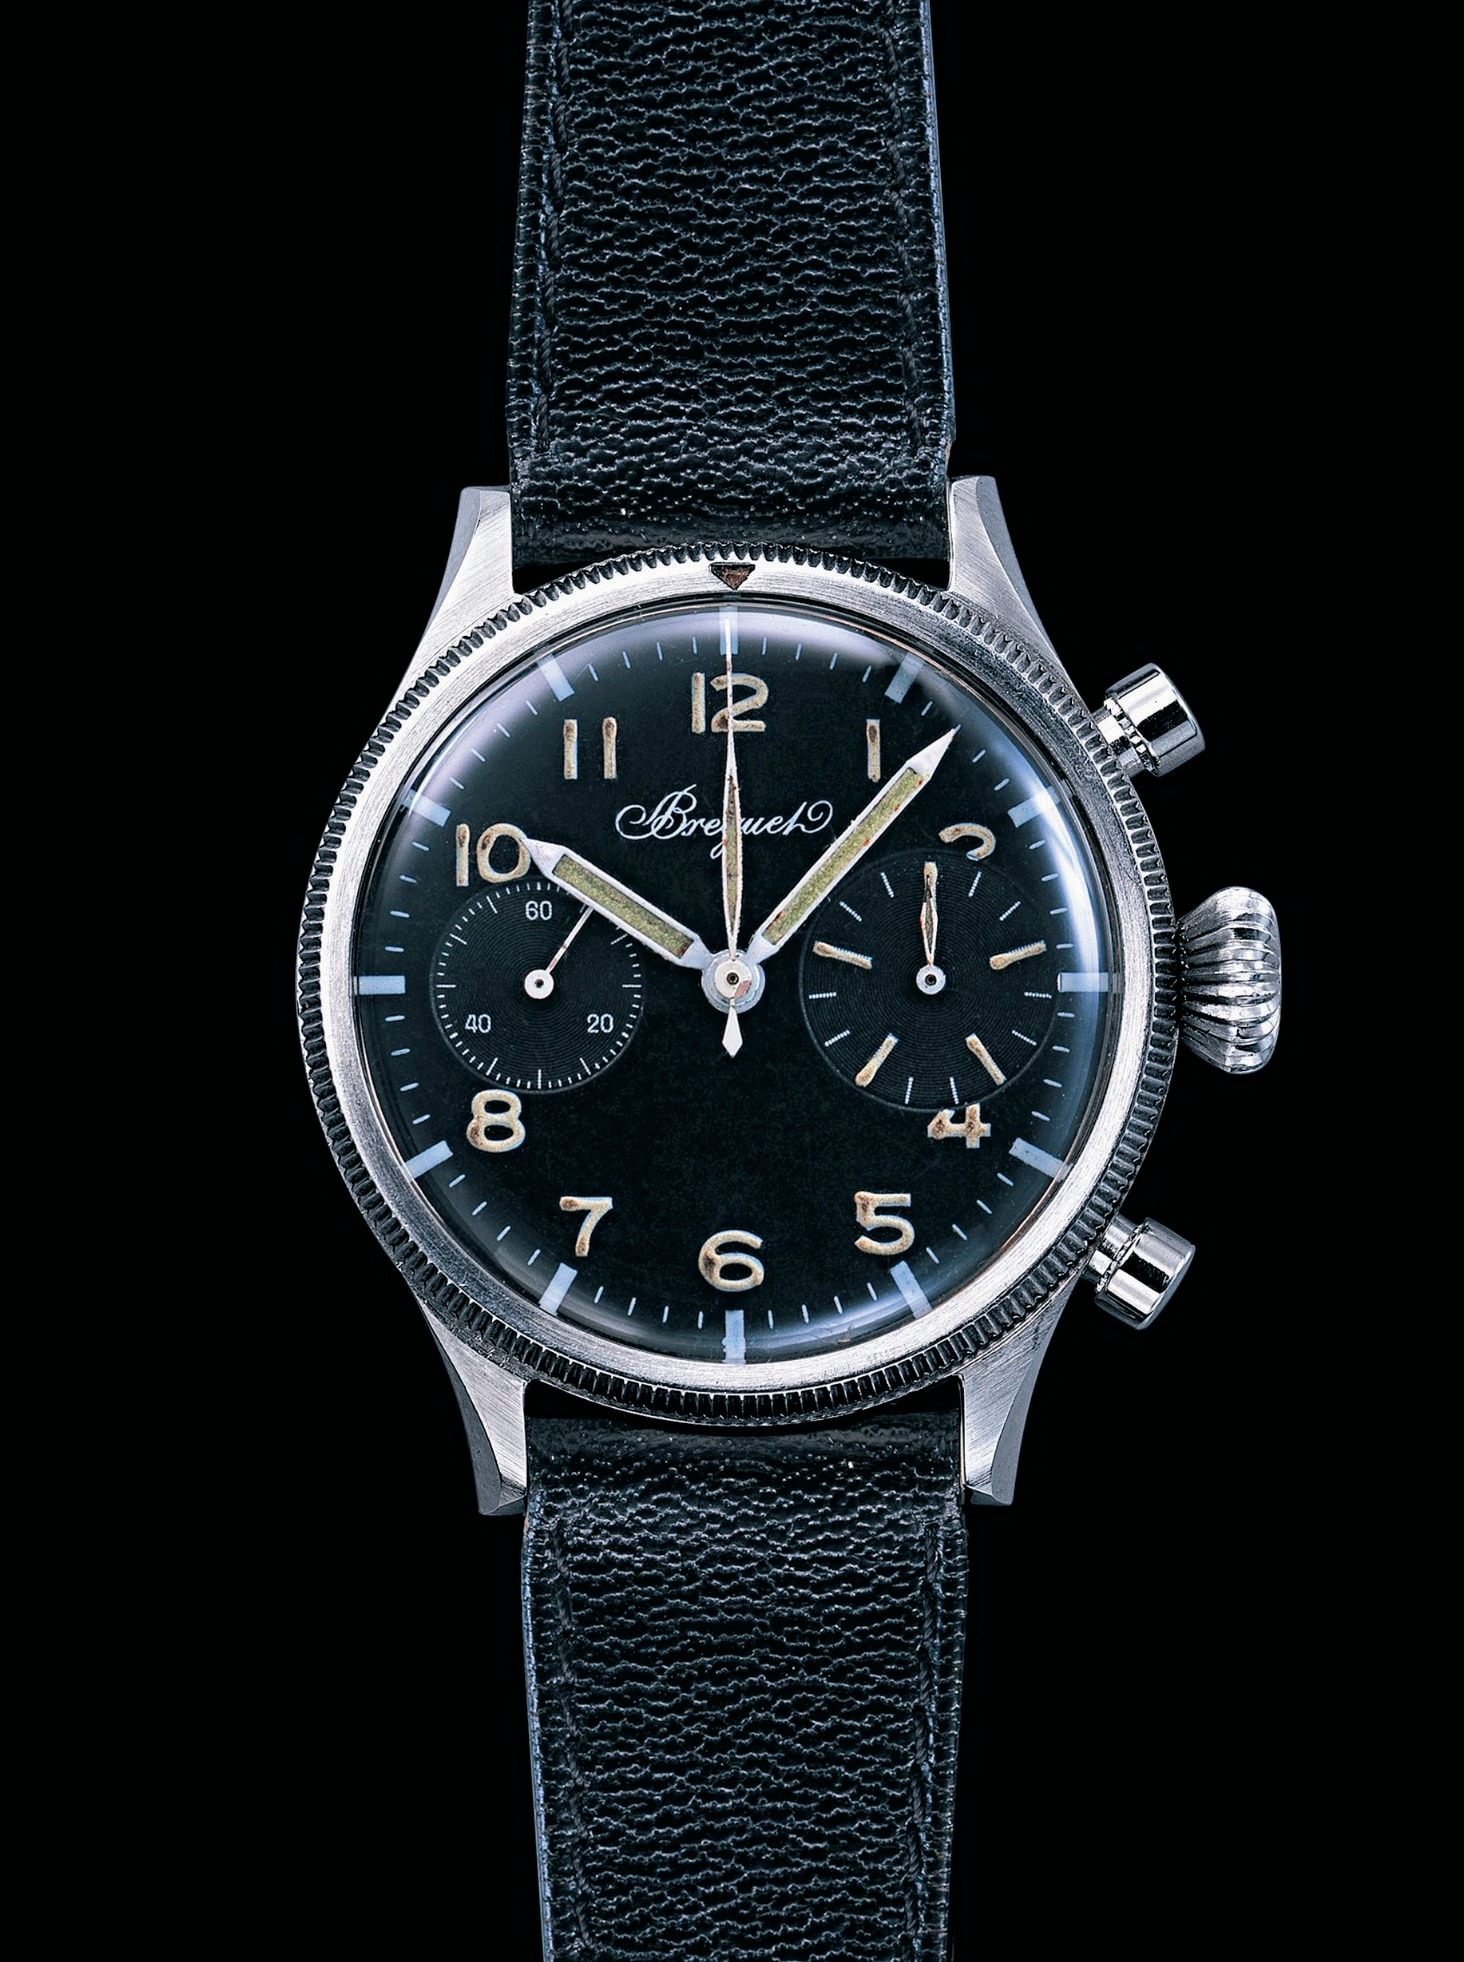 Type 20 and Type XX Chronographs, the Bond Between Watchmaking and Aviation